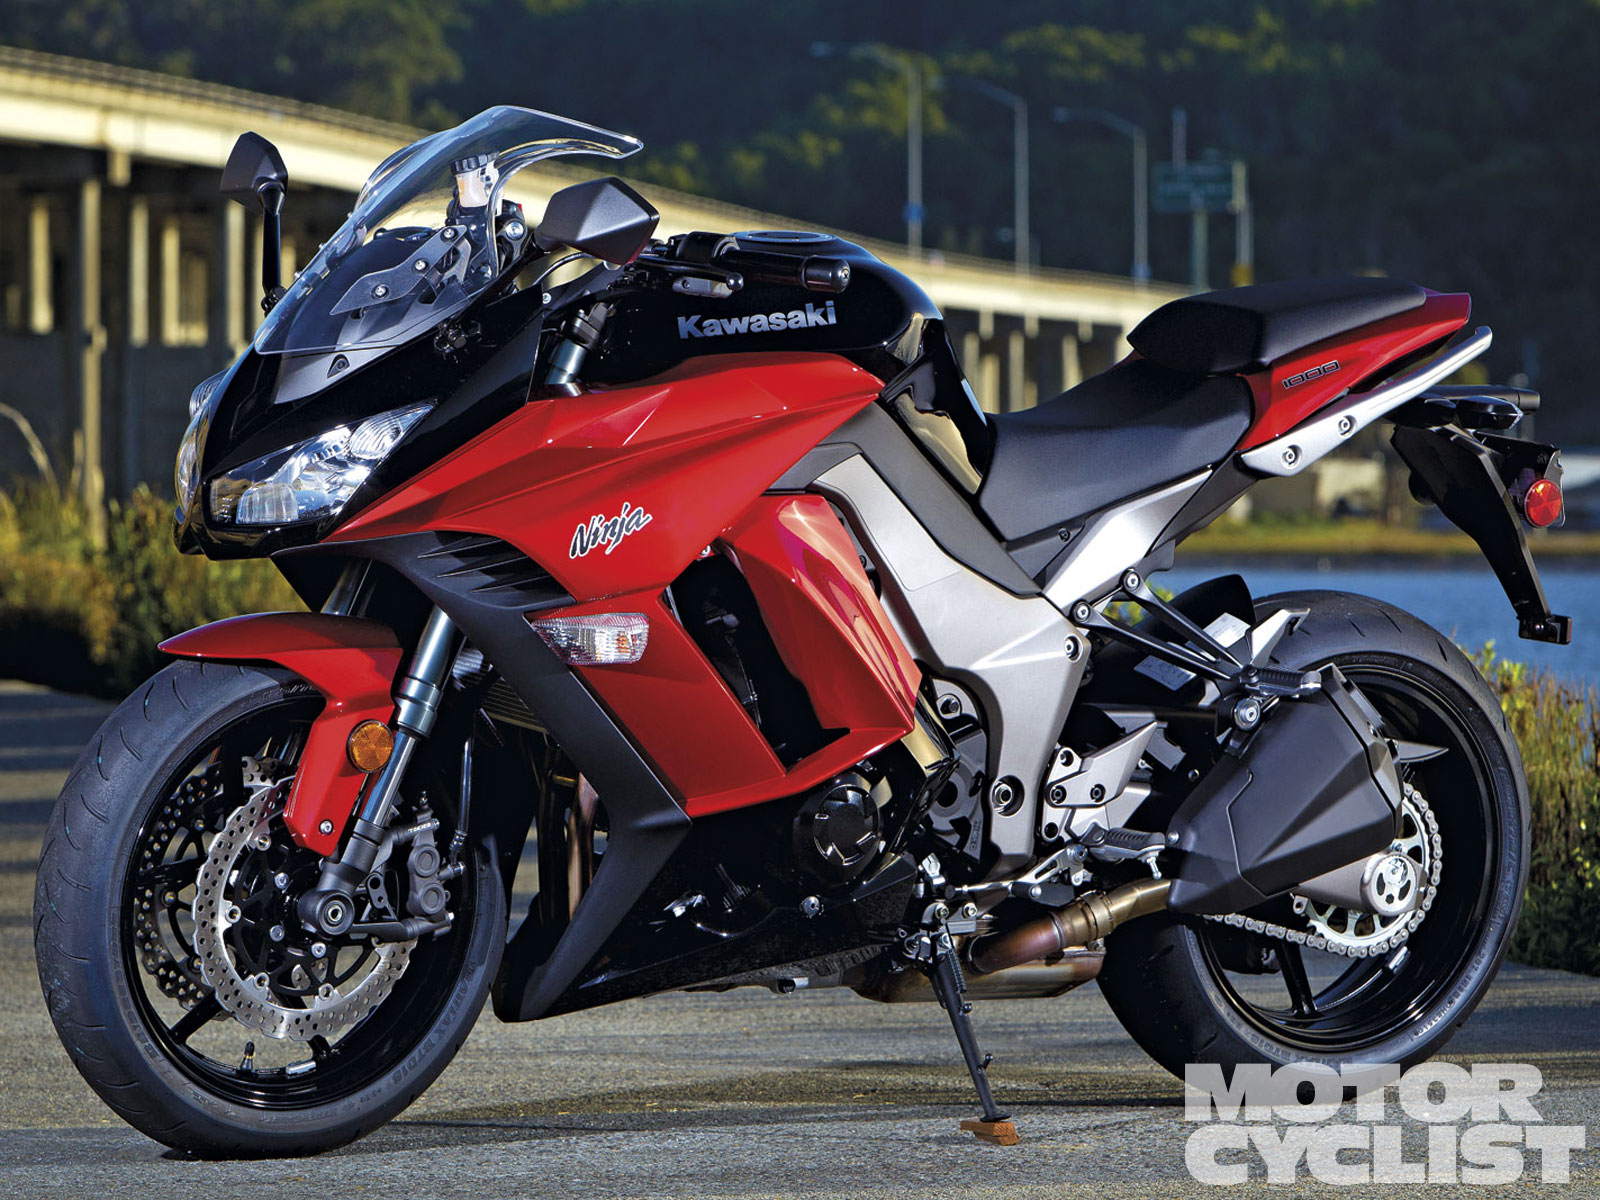 KAWASAKI NINJA 1000 - Review and photos